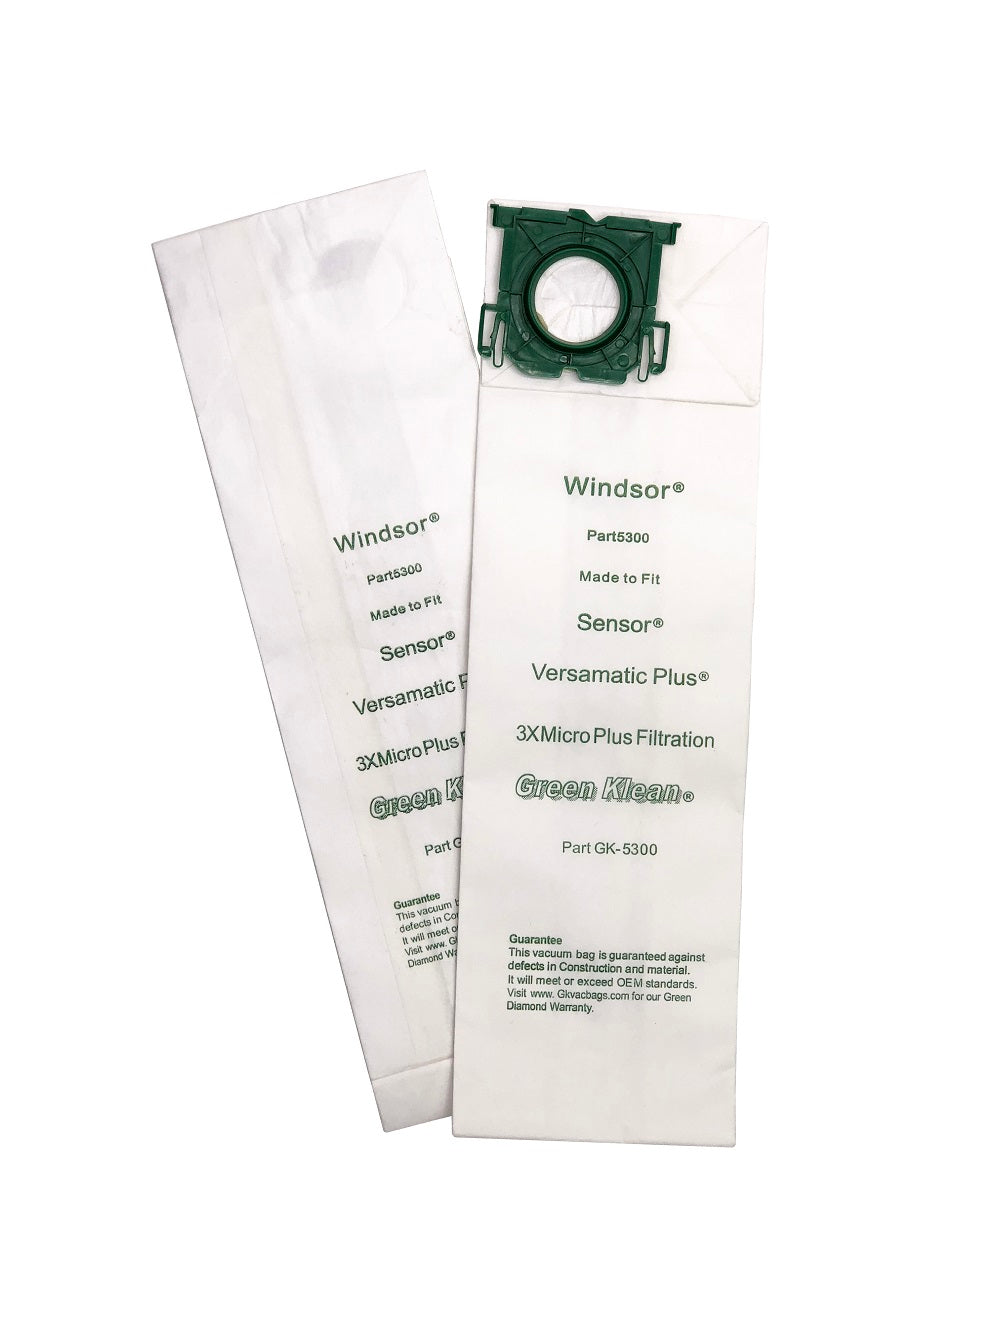 VACUUM/VAC BAGS FOR WINDSOR SENSOR OR VERSMATIC PLUS